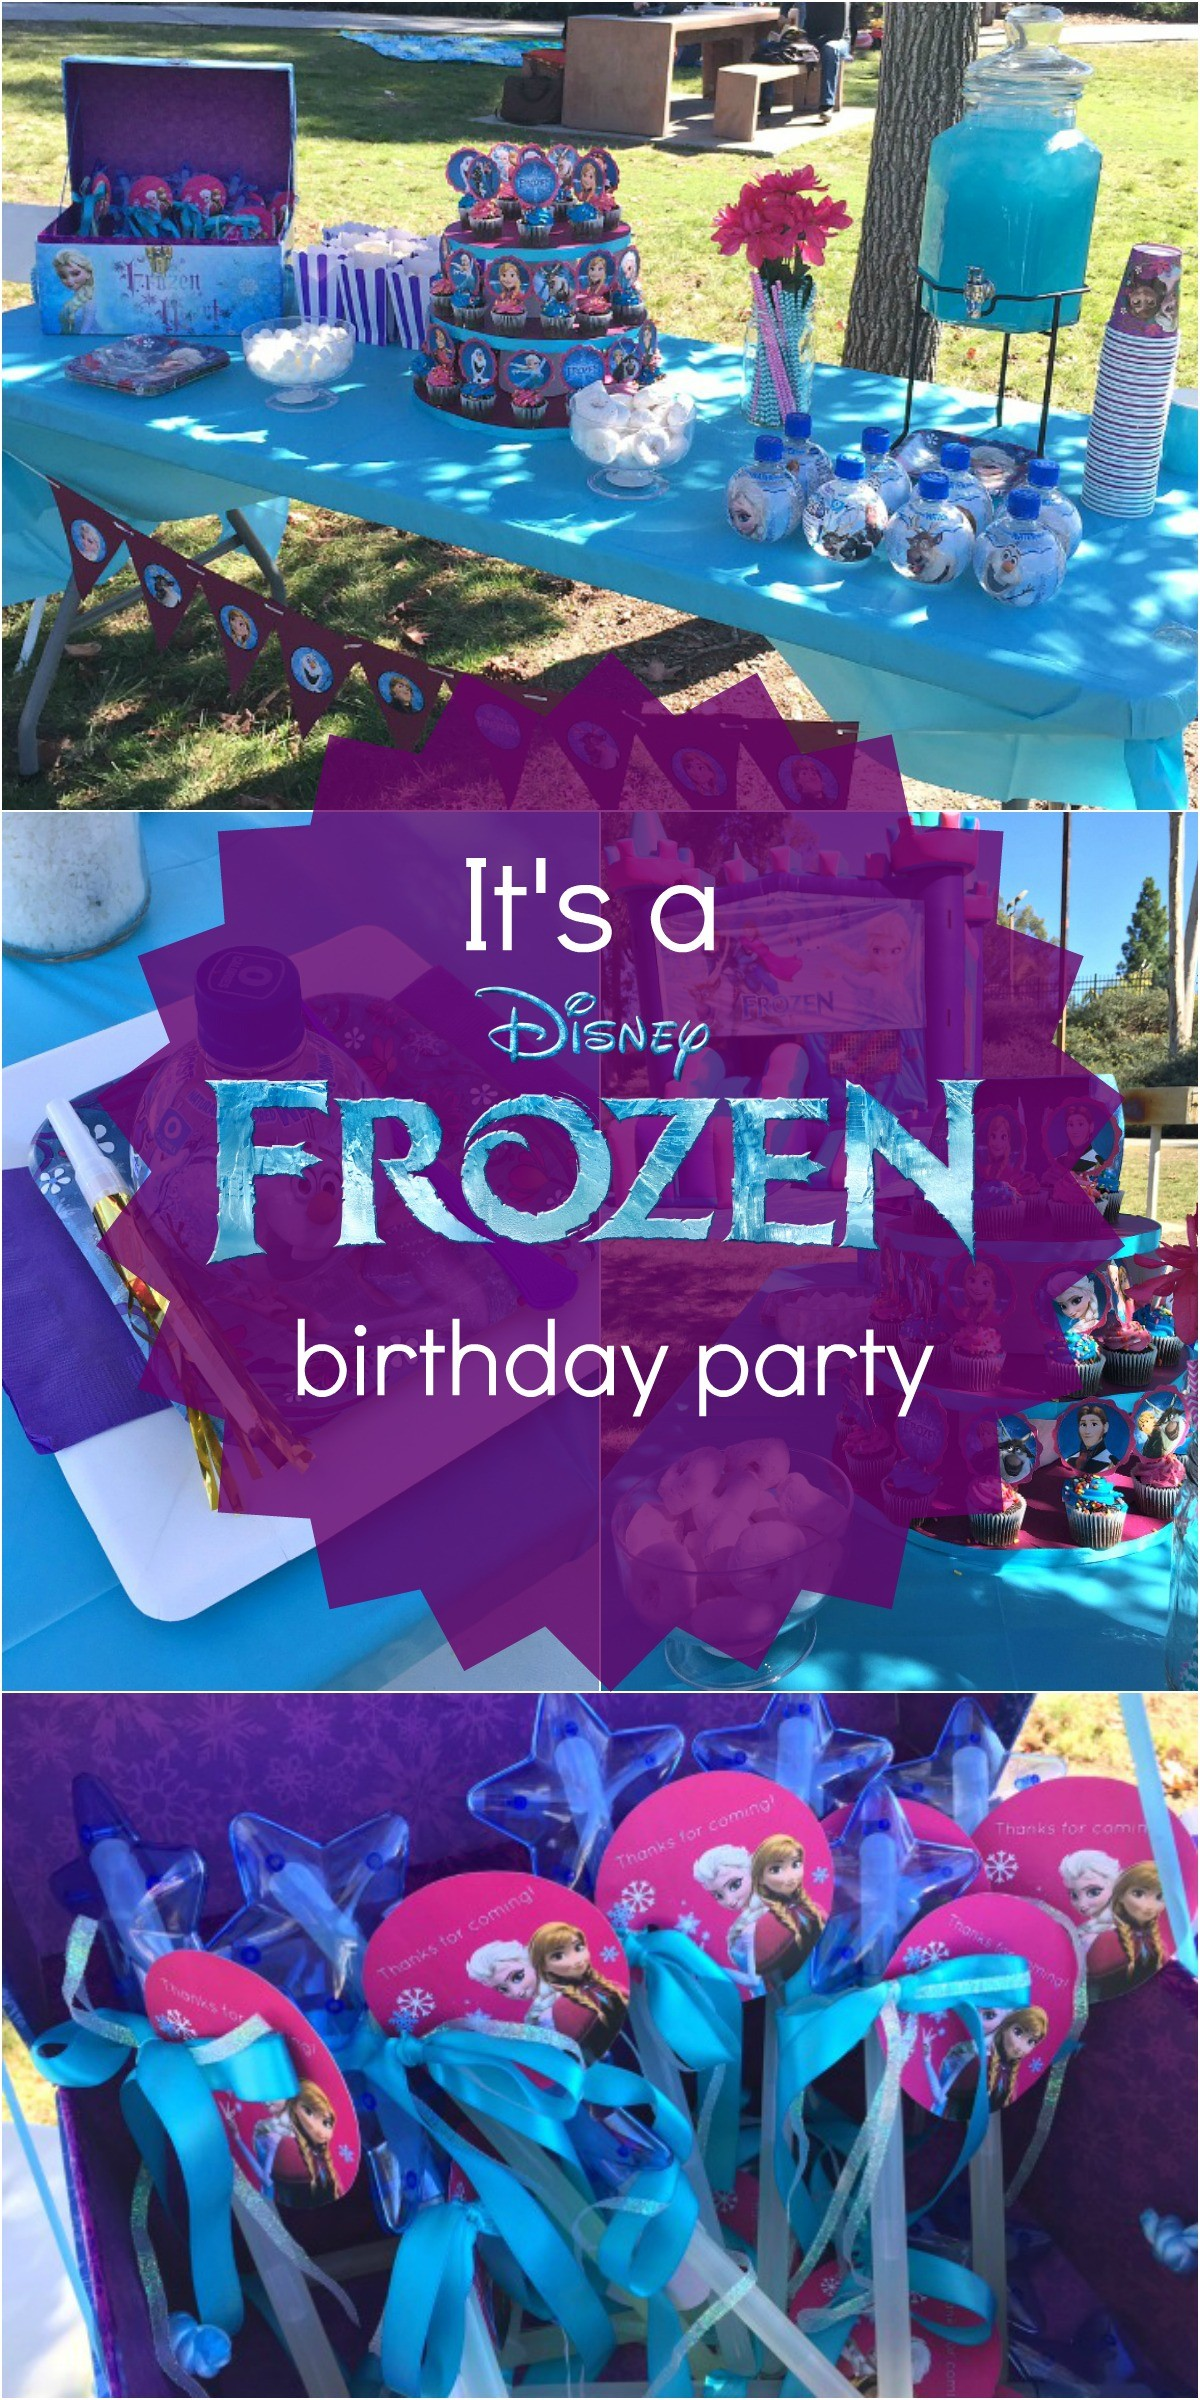 Frozen birthday party ideas pink purple blue and a jumper too